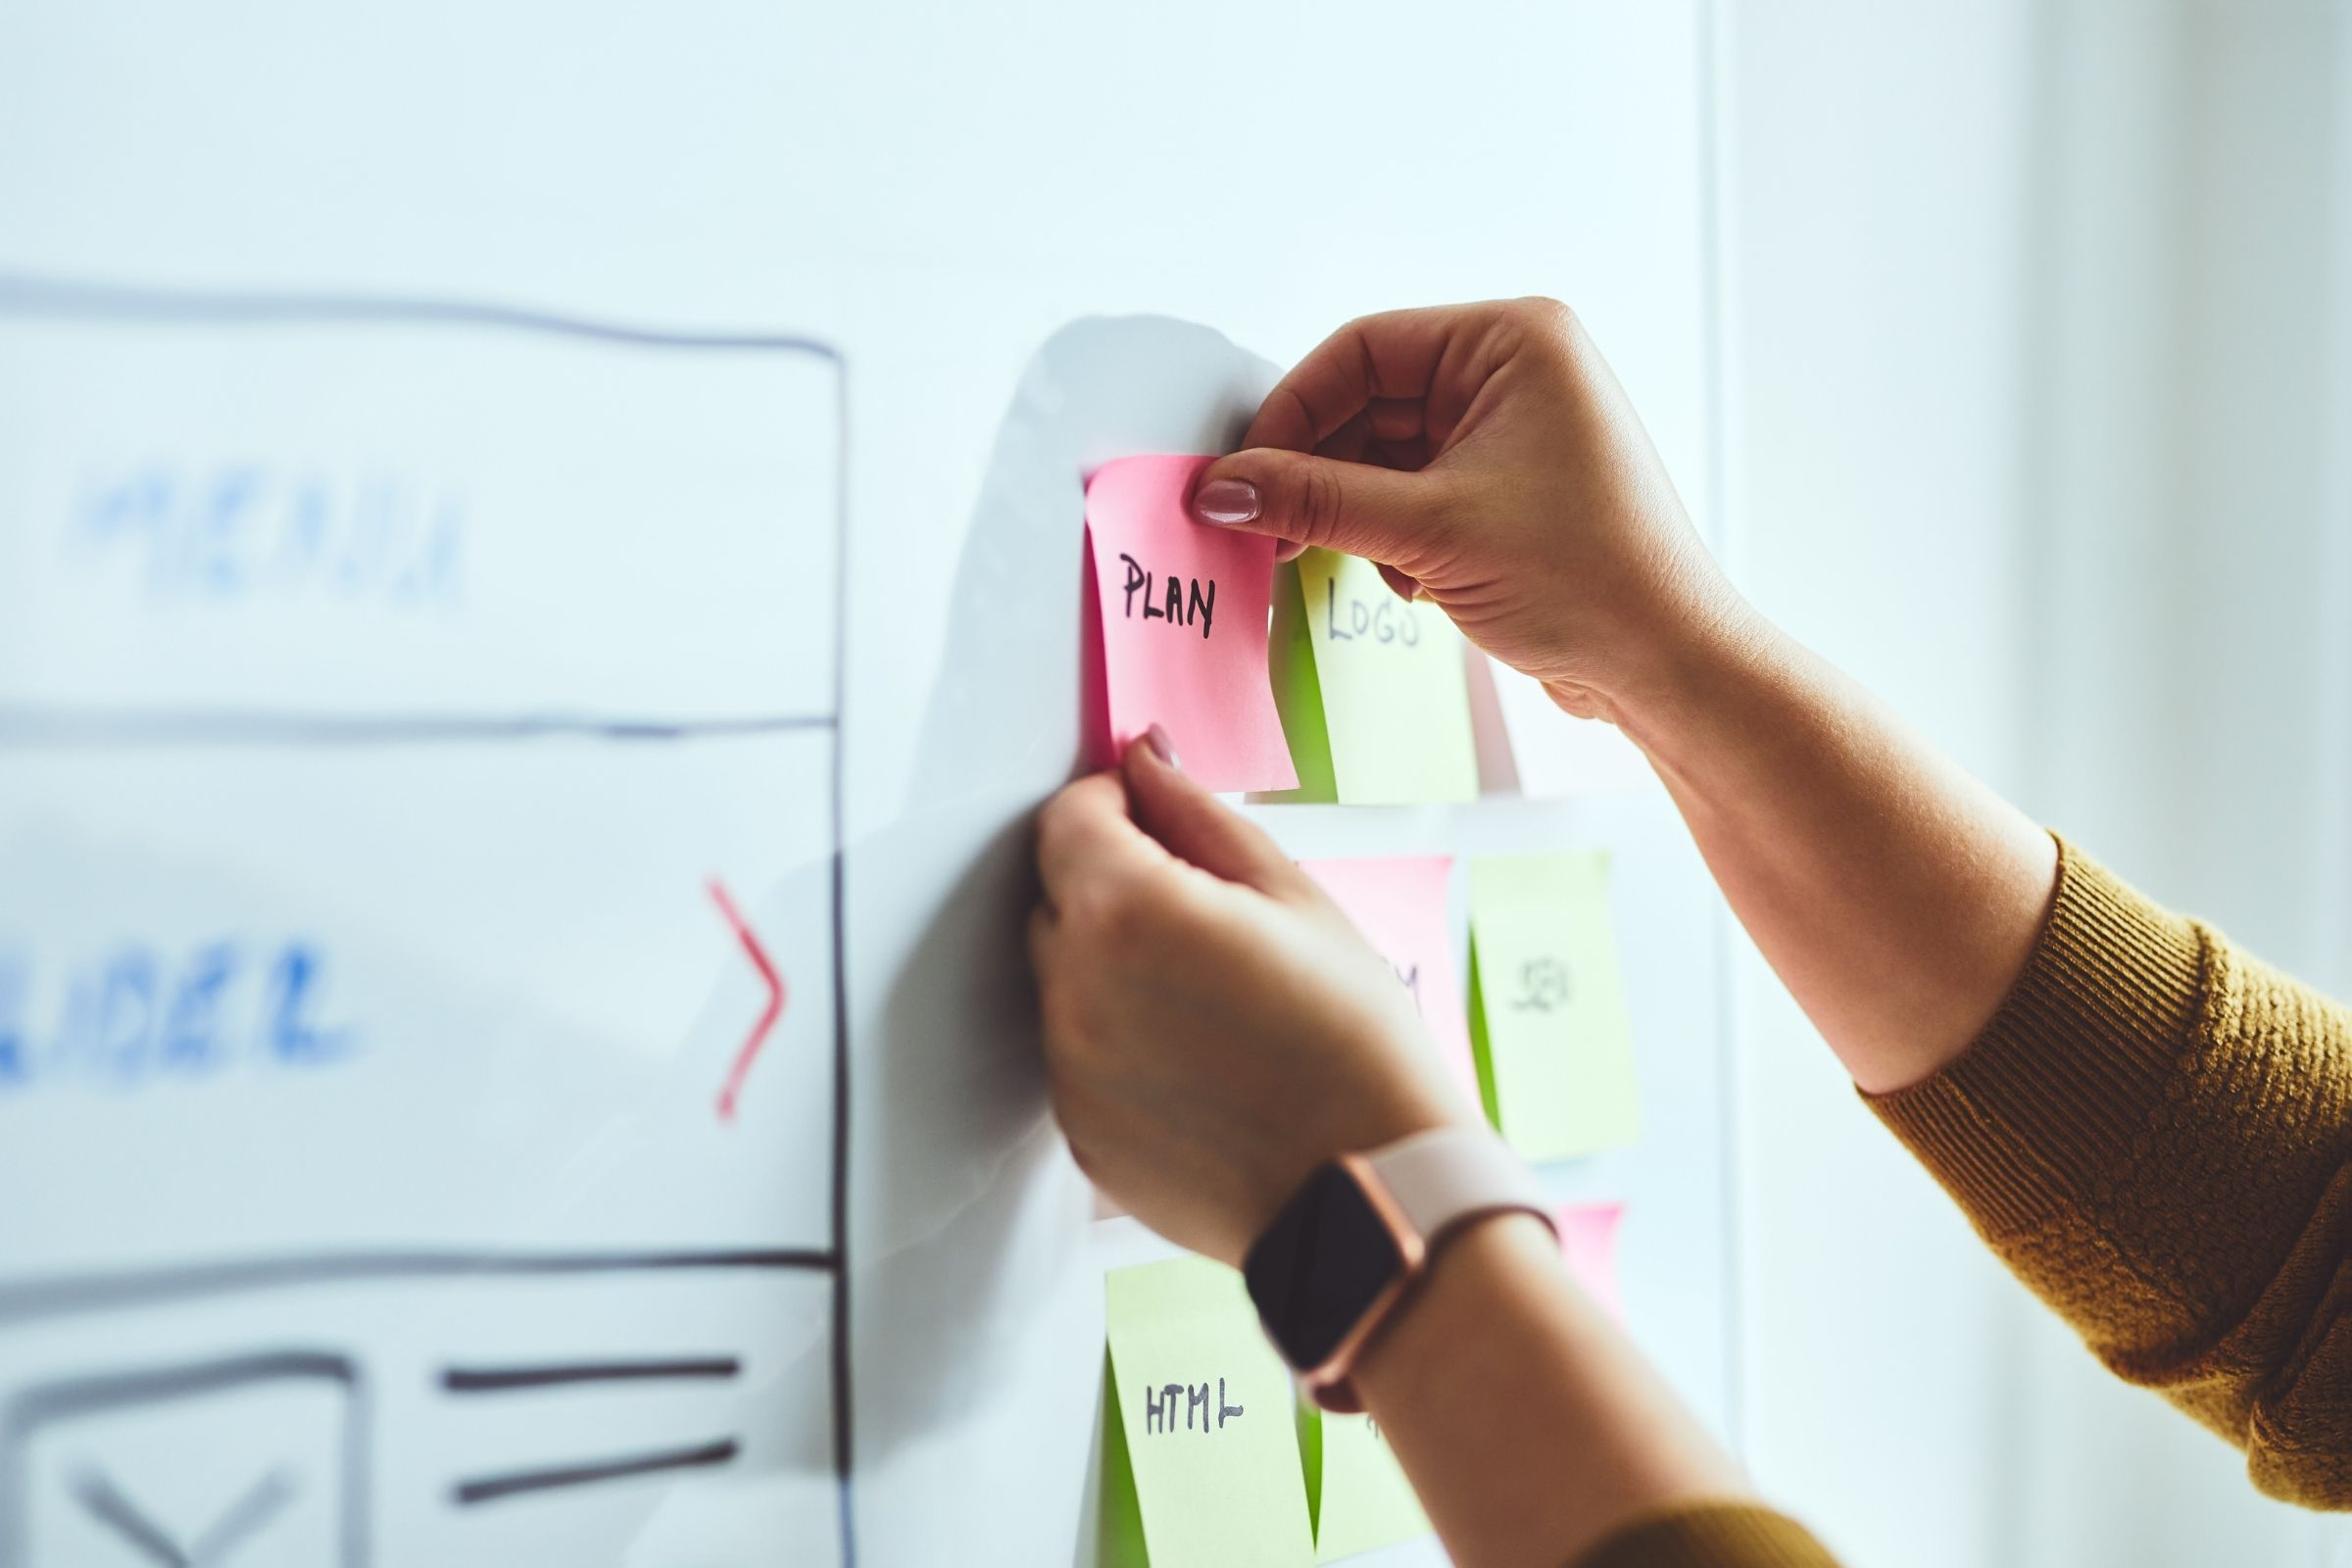 Woman using sticky notes to plan website.